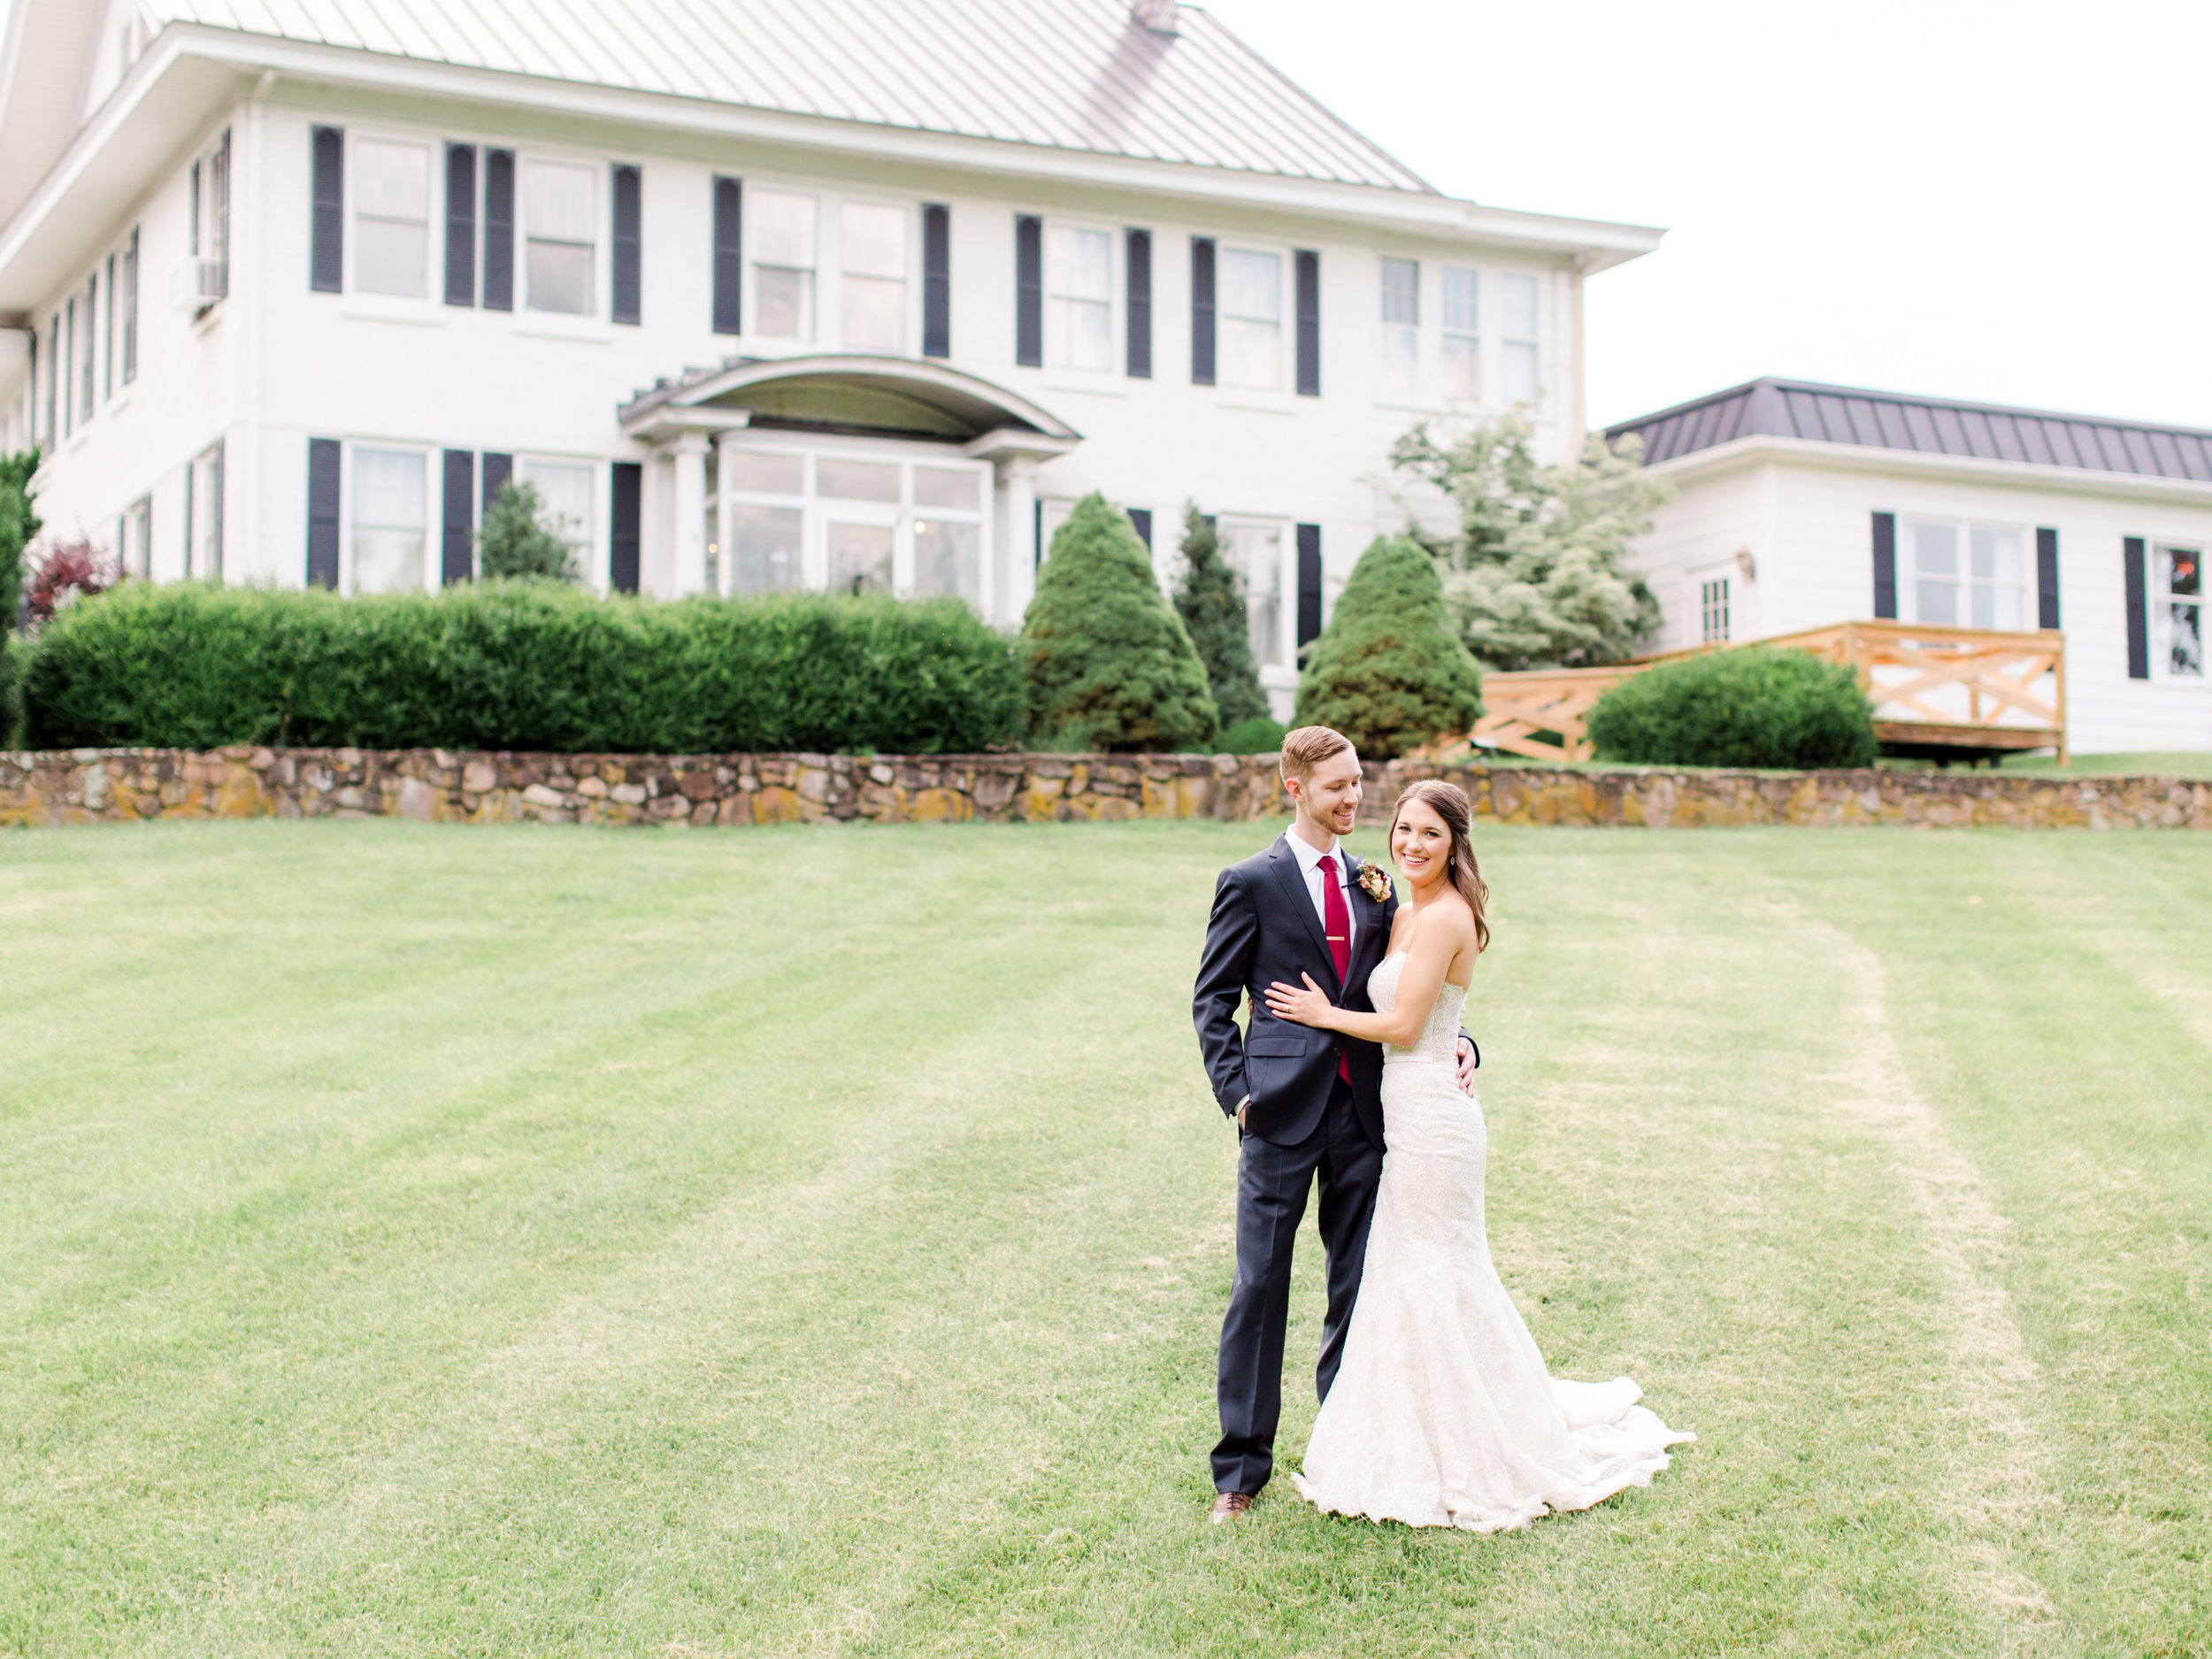 roanoke-virginia-wedding-photographer-plantation-on-sunnybrook-meredith-and-logan-563.jpg